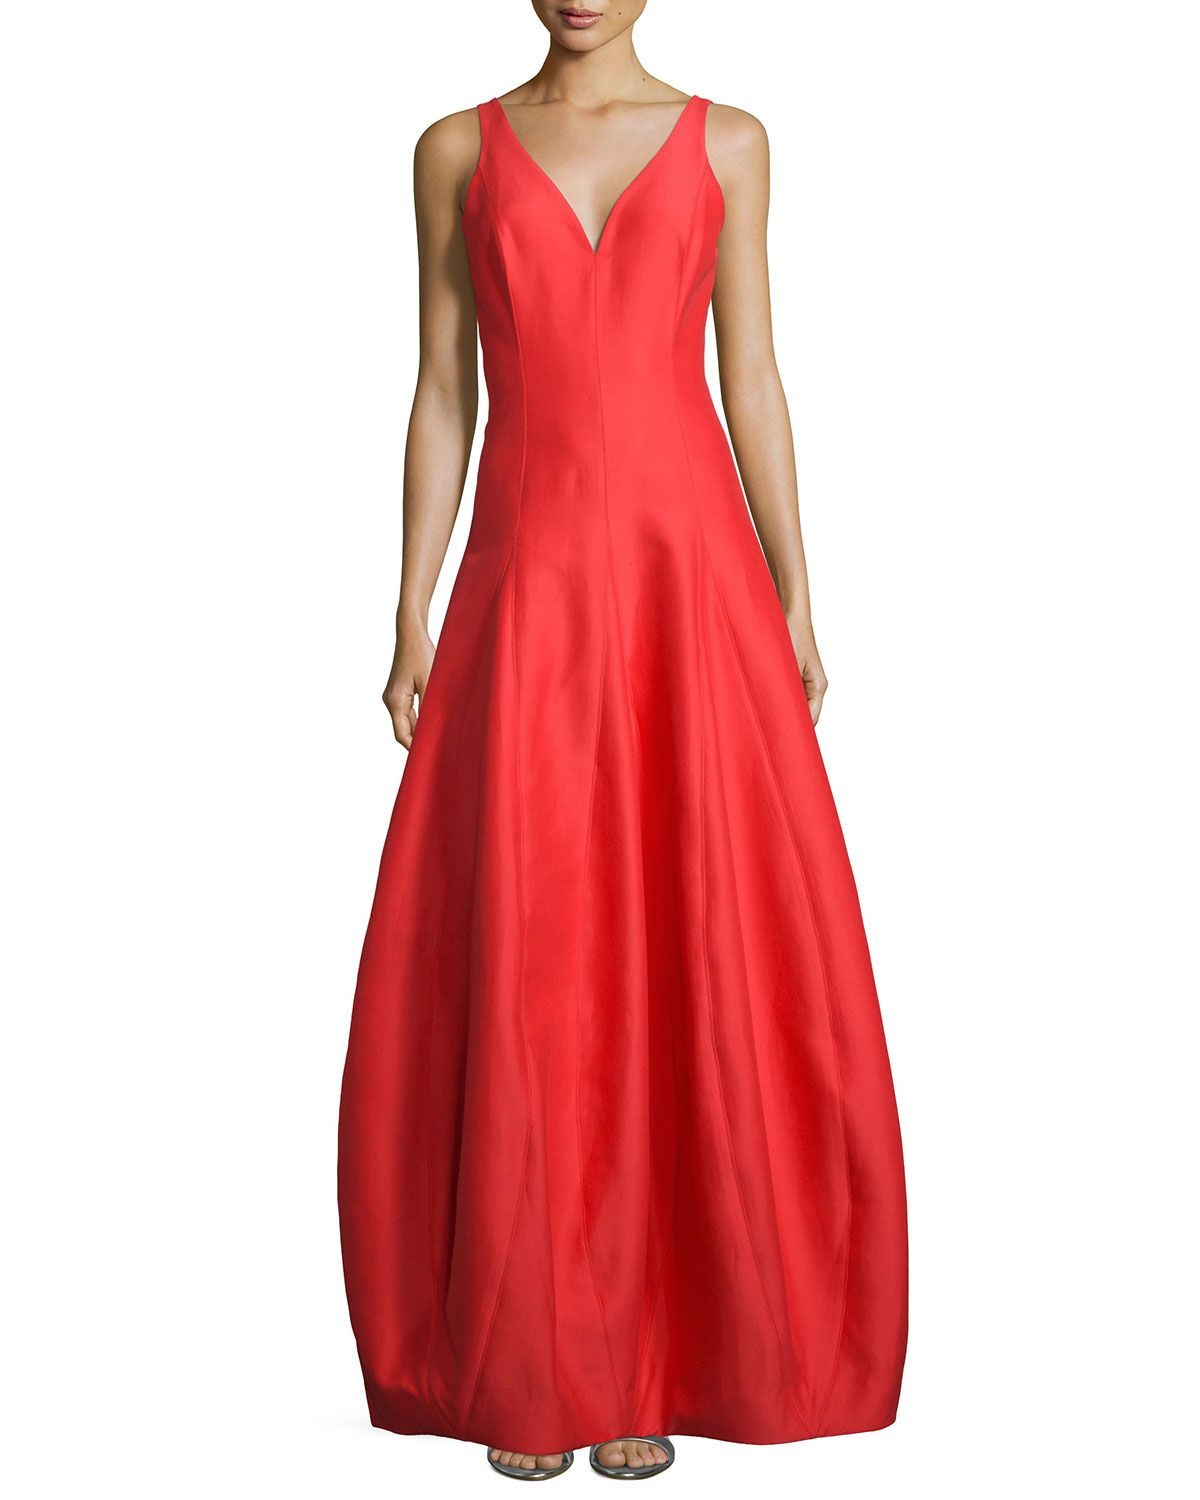 Neiman marcus dresses for weddings  Sleeveless VNeck Tulip Gown Navy  Products  Pinterest  Halston